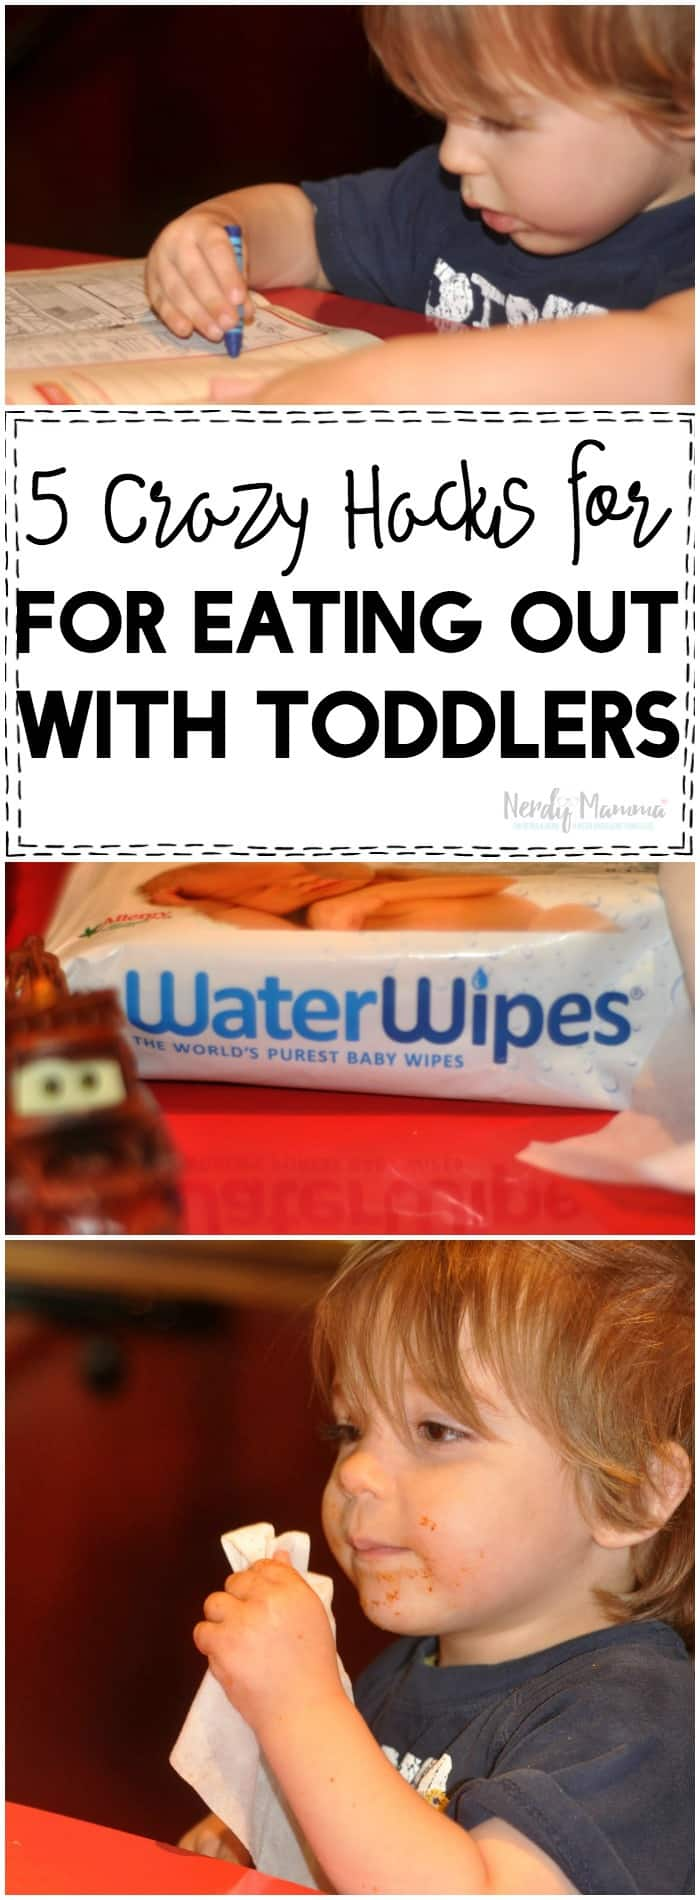 These 5 crazy hacks for eating out with toddlers make it SO easy to enjoy a meal out with your kids! I need every one of these hacks in my life!